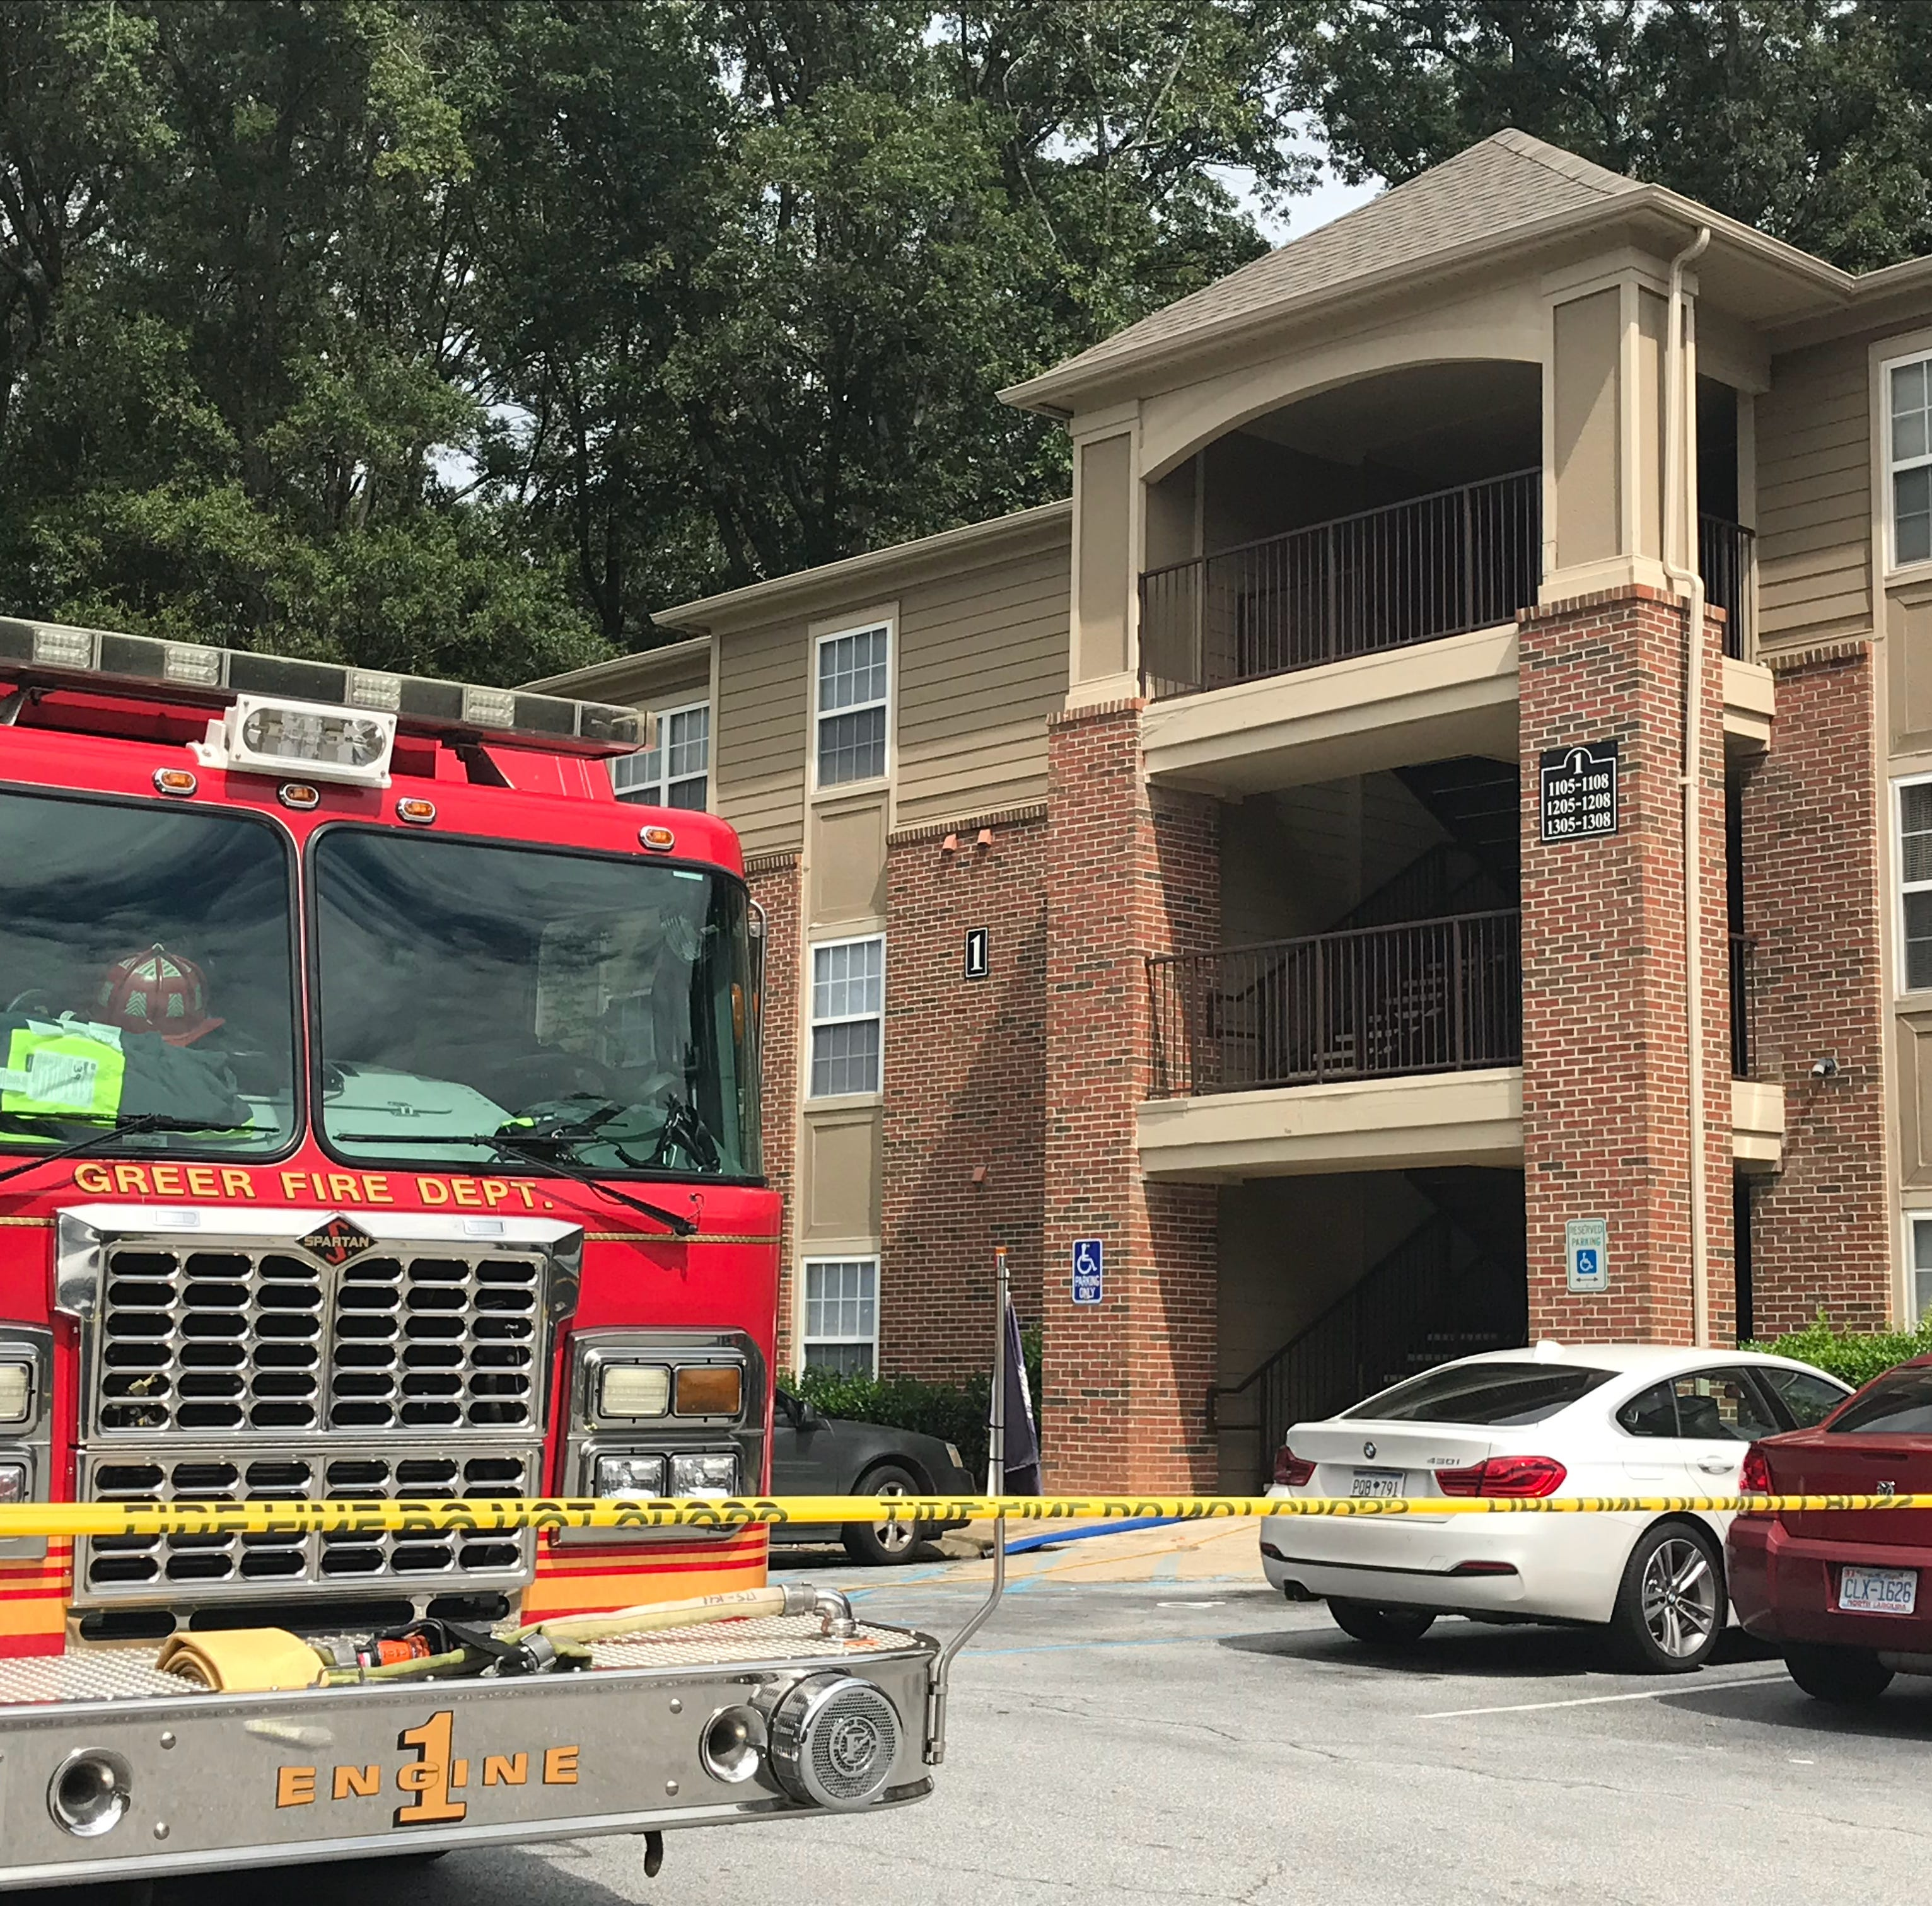 Man, 20, and 17-year-old girl identified in Greer double homicide tied to suicide